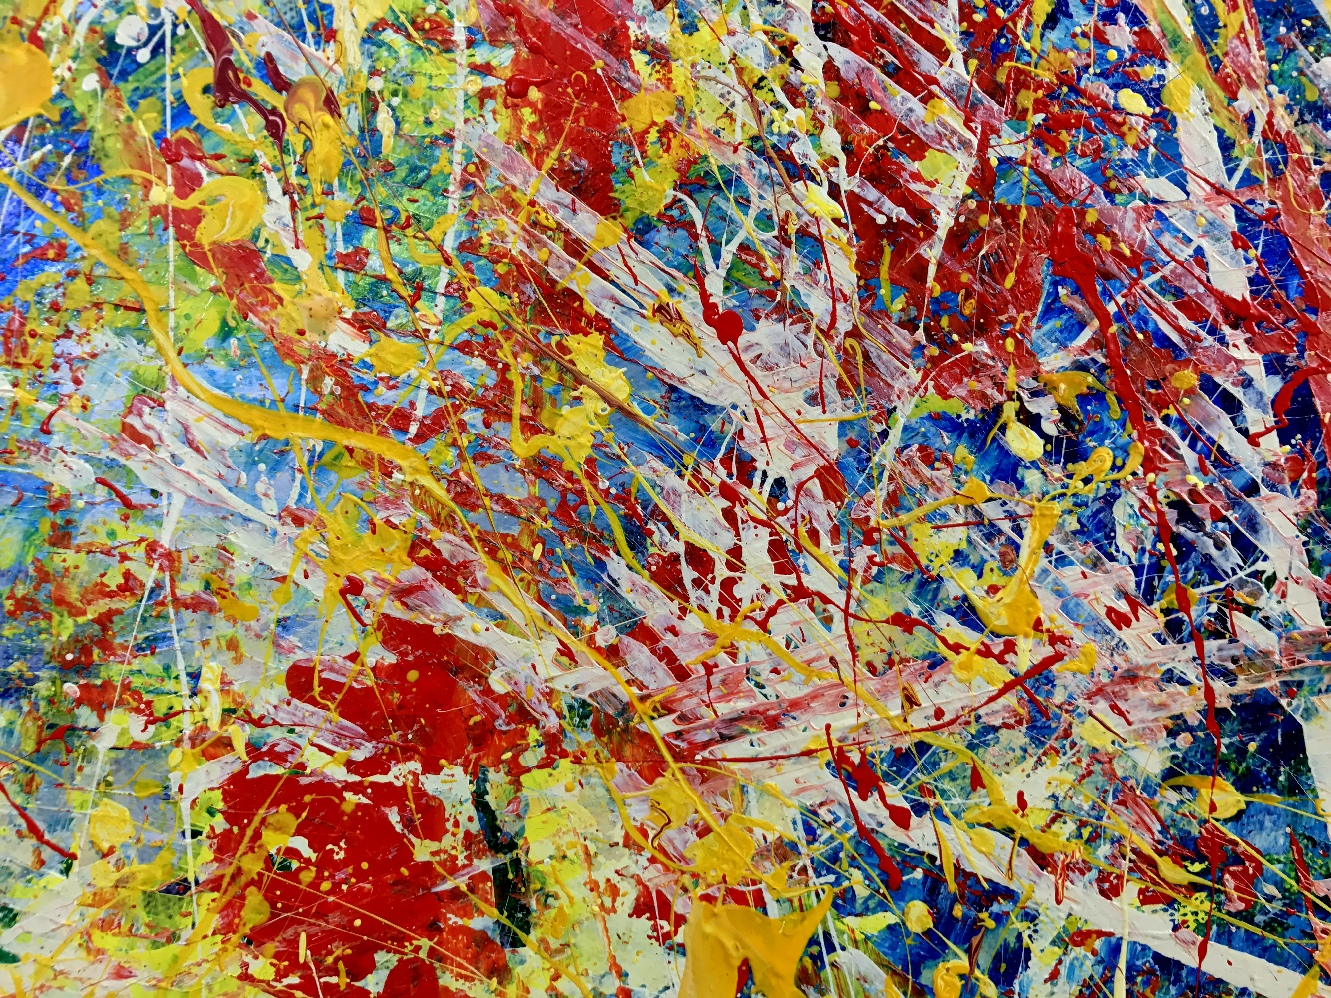 Infinite Dimensions 1 - (2016) Abstract Acrylic painting by Nestor Toro